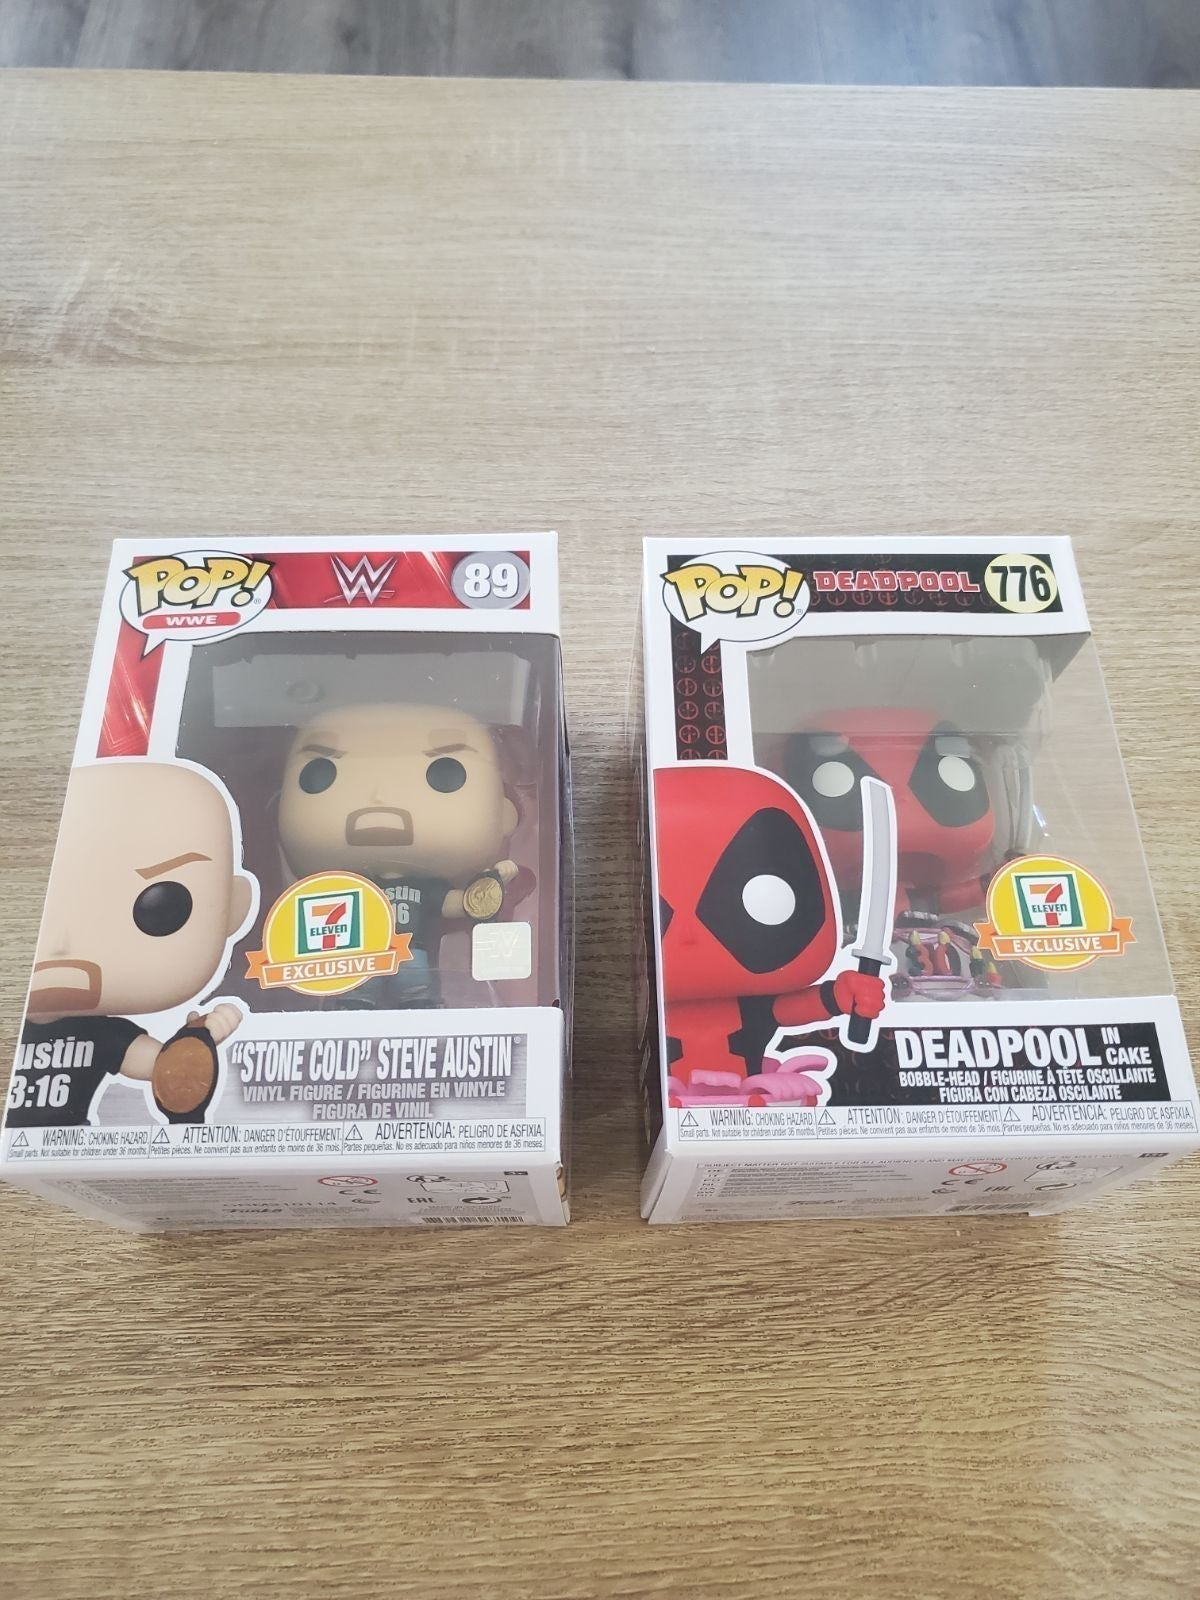 711 exclusives Stone Cold and Deadpool